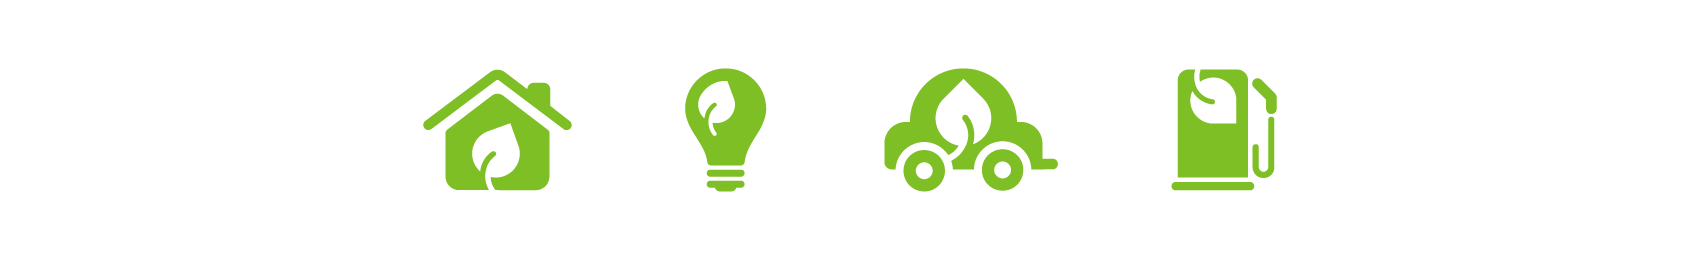 green environmental icon series